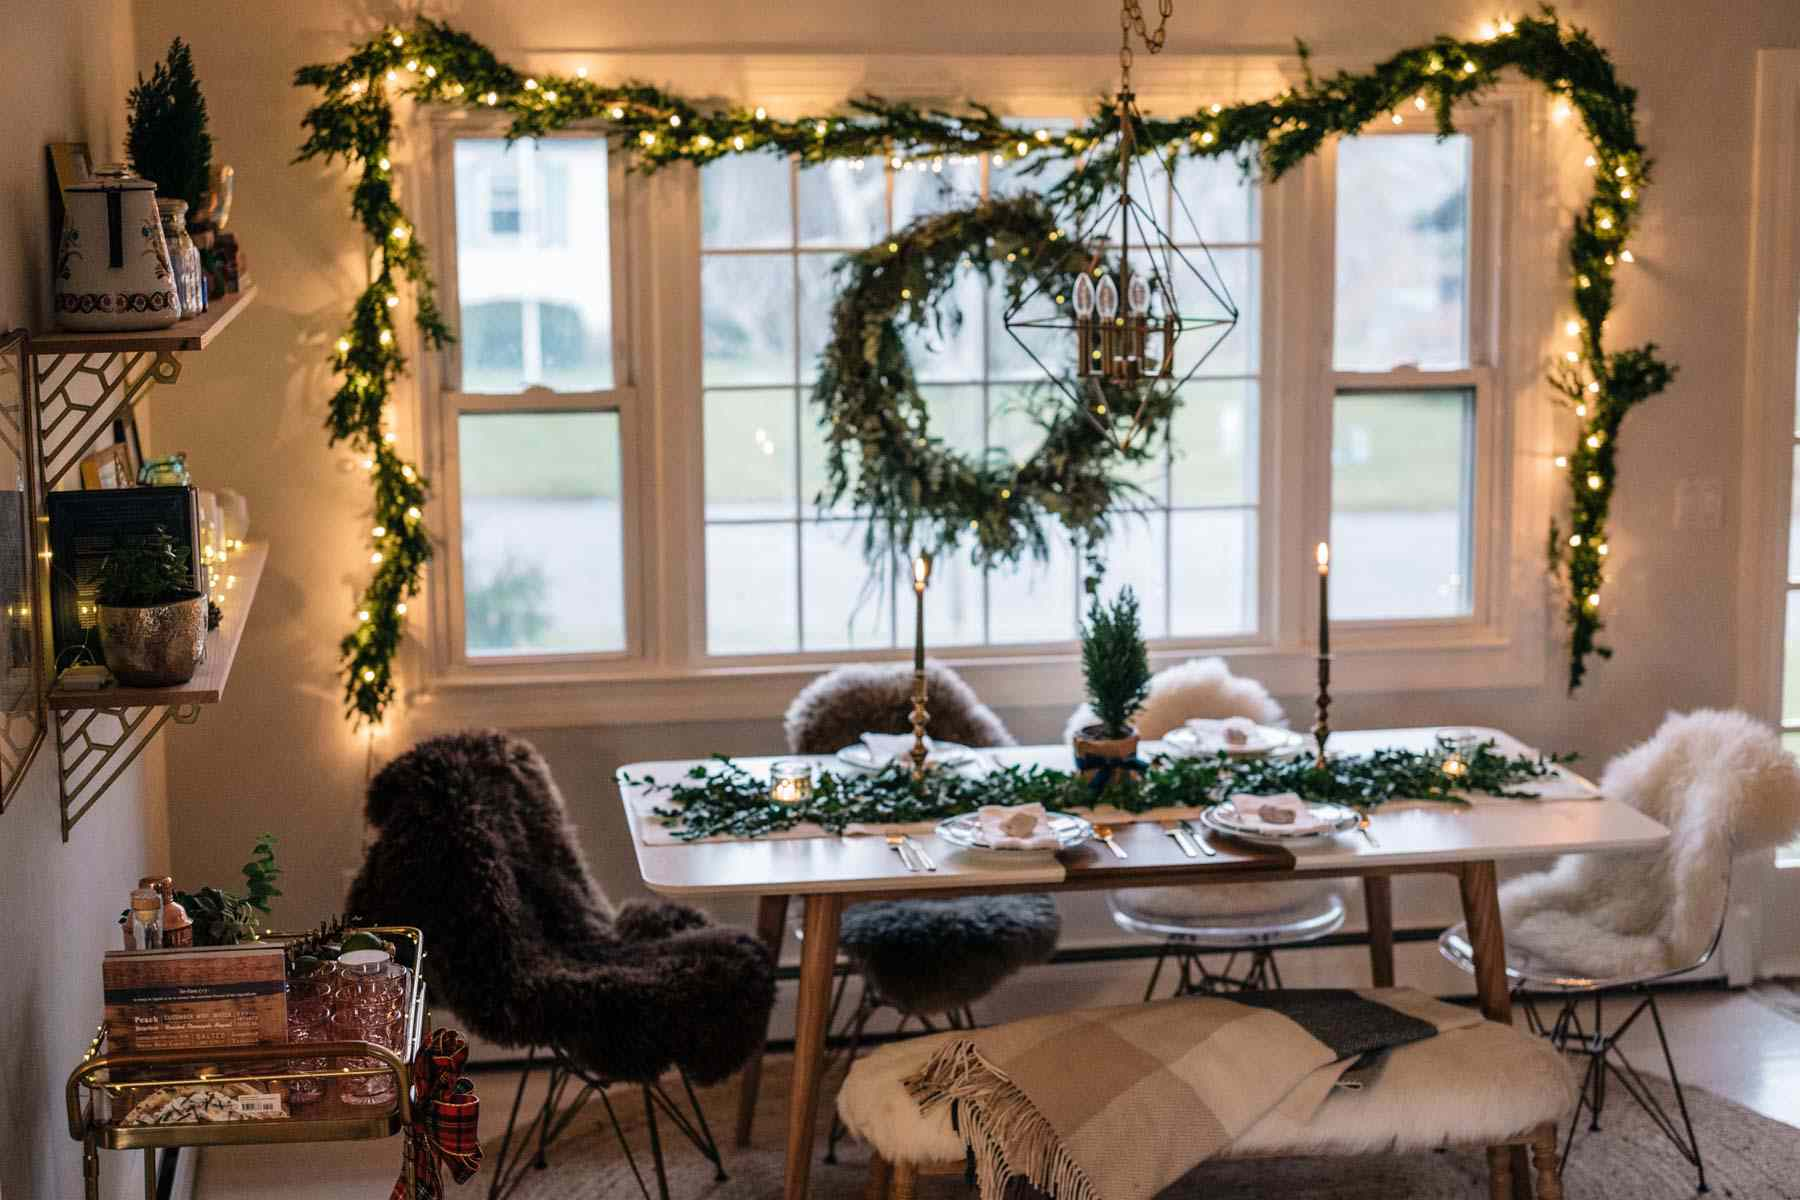 The Latest Christmas Decorating Ideas and Color Schemes